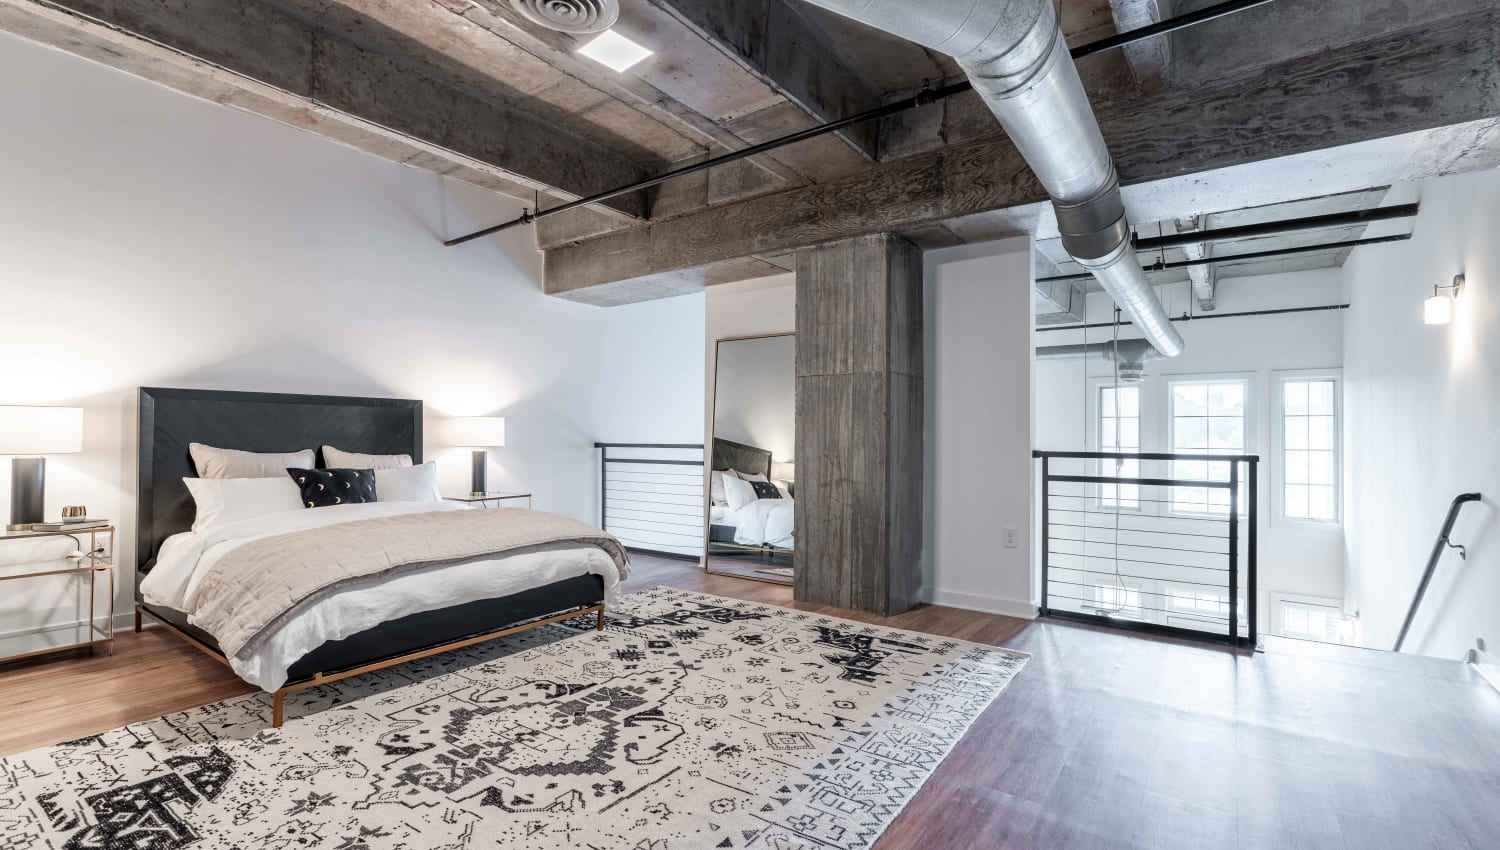 Huge bedroom with tons of space for activities at 17th Street Lofts in Atlanta, Georgia